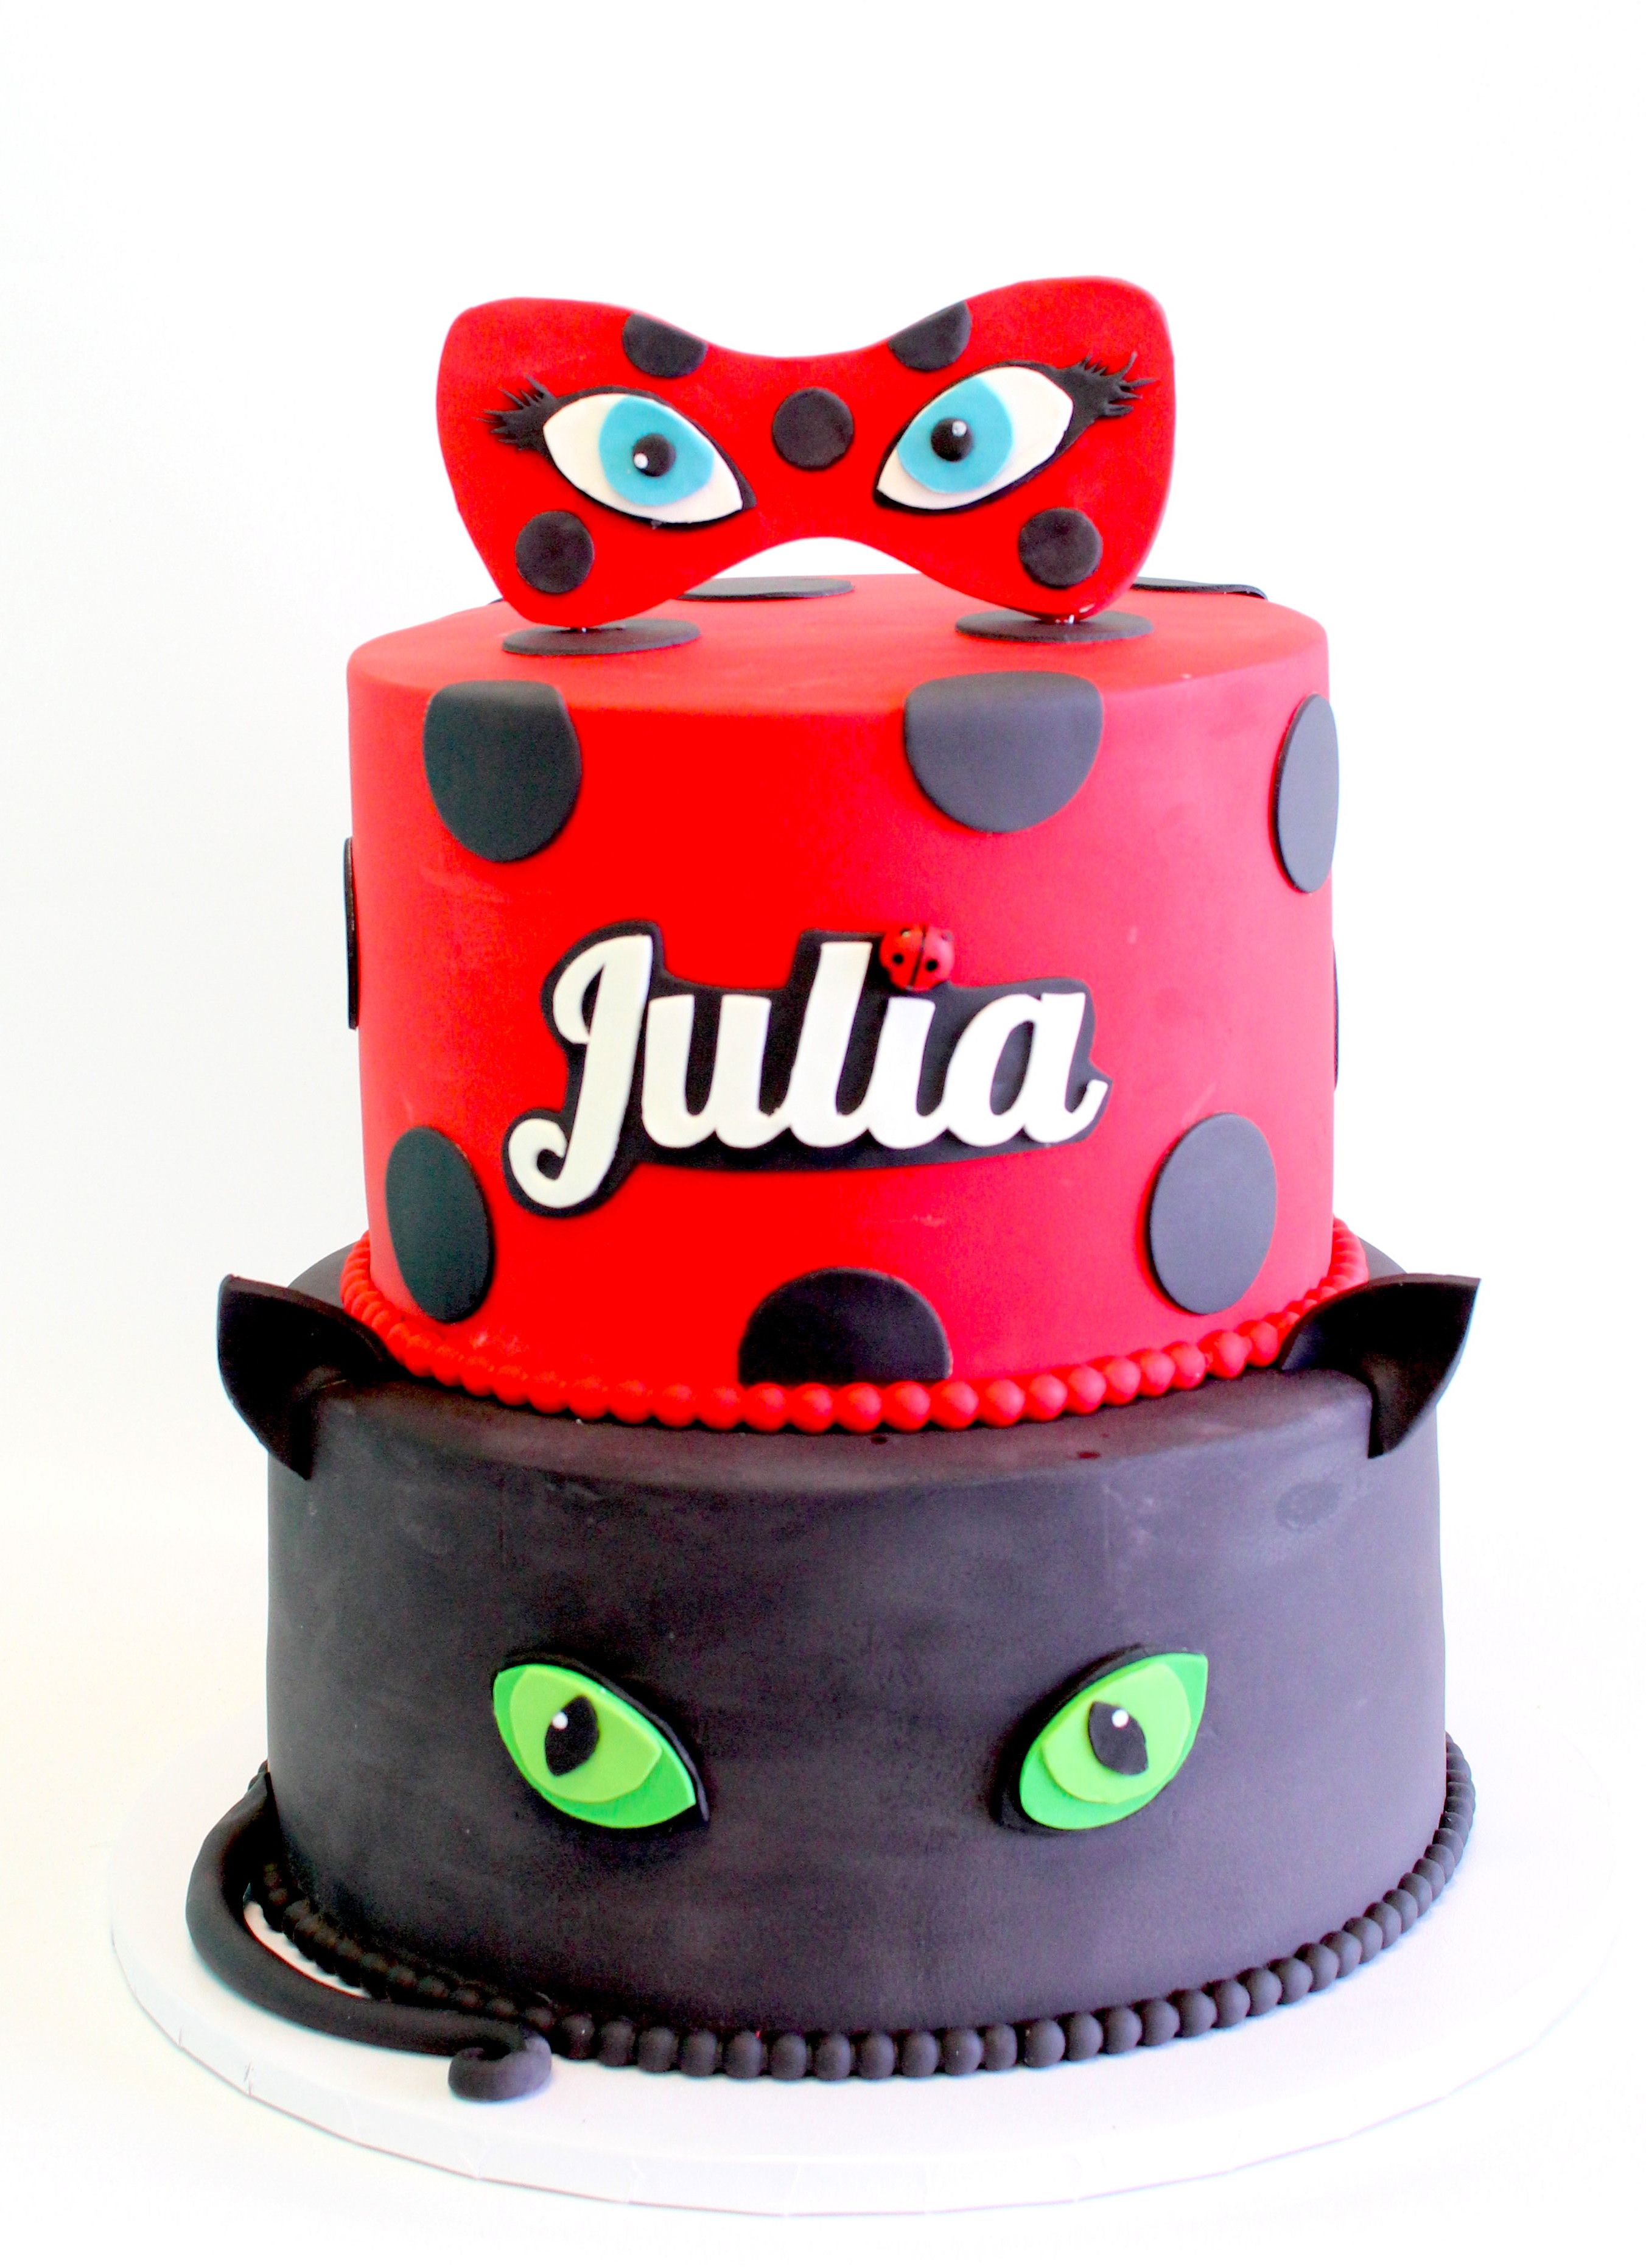 the miraculous ladybug cake by cake bash studio bakery lake